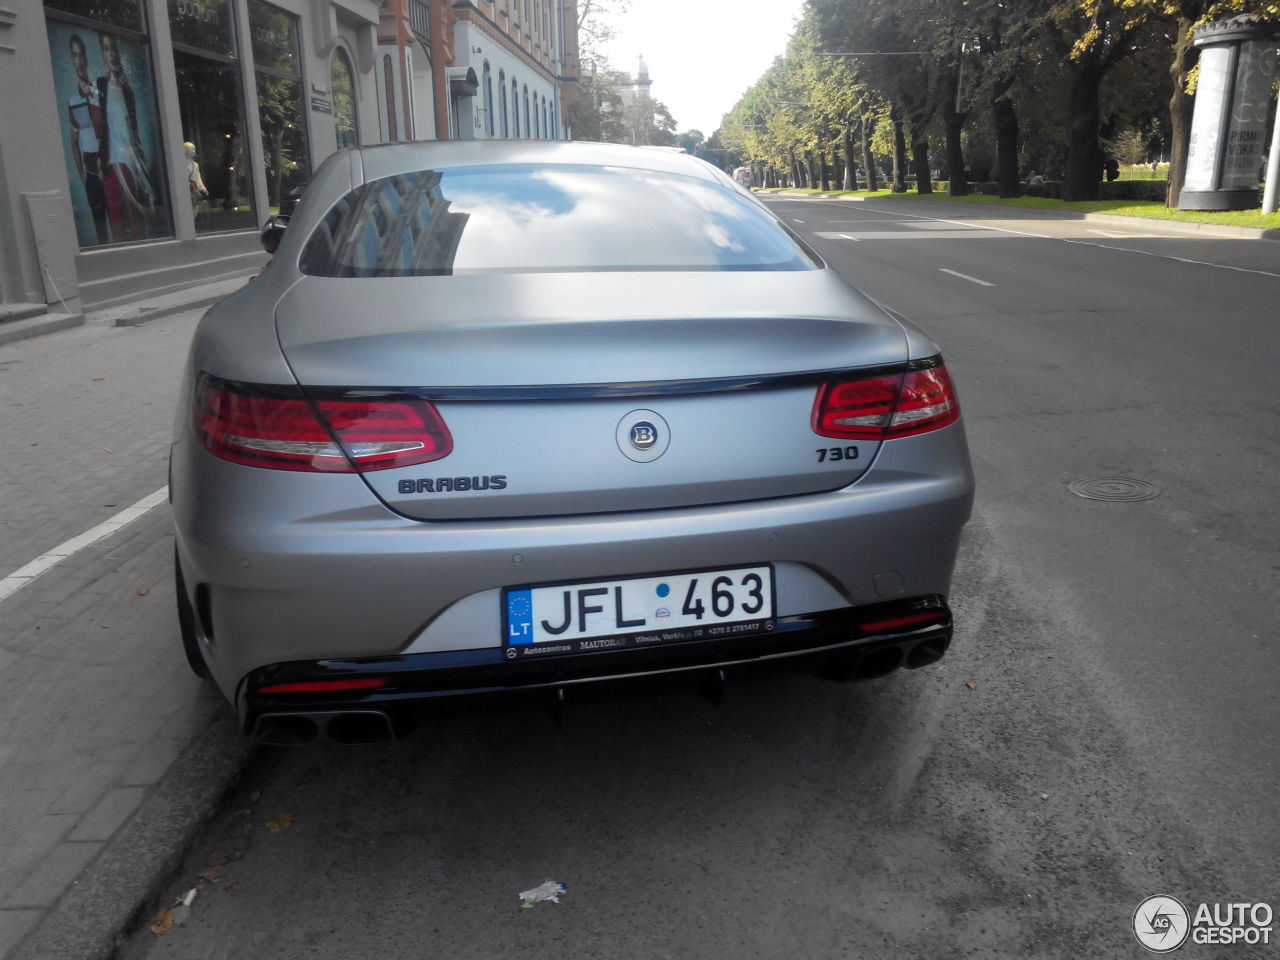 Mercedes benz brabus s b63s 730 coupe c217 3 september for Mercedes benz brabus price